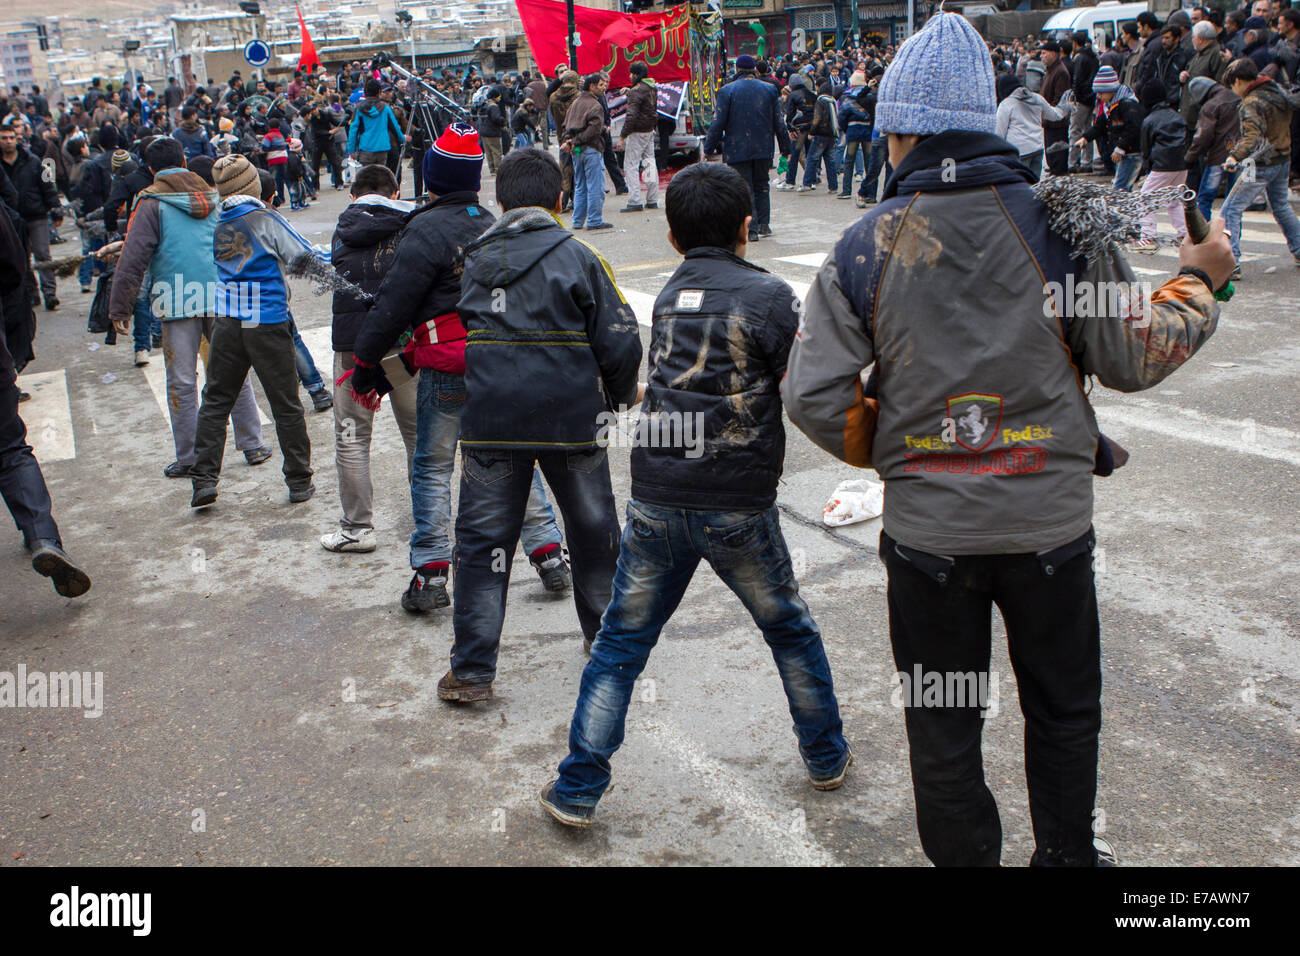 Shiite Muslim men and boys, chanting and self-flagellating during Ashura Day, on the streets of Bijar, Iran. - Stock Image